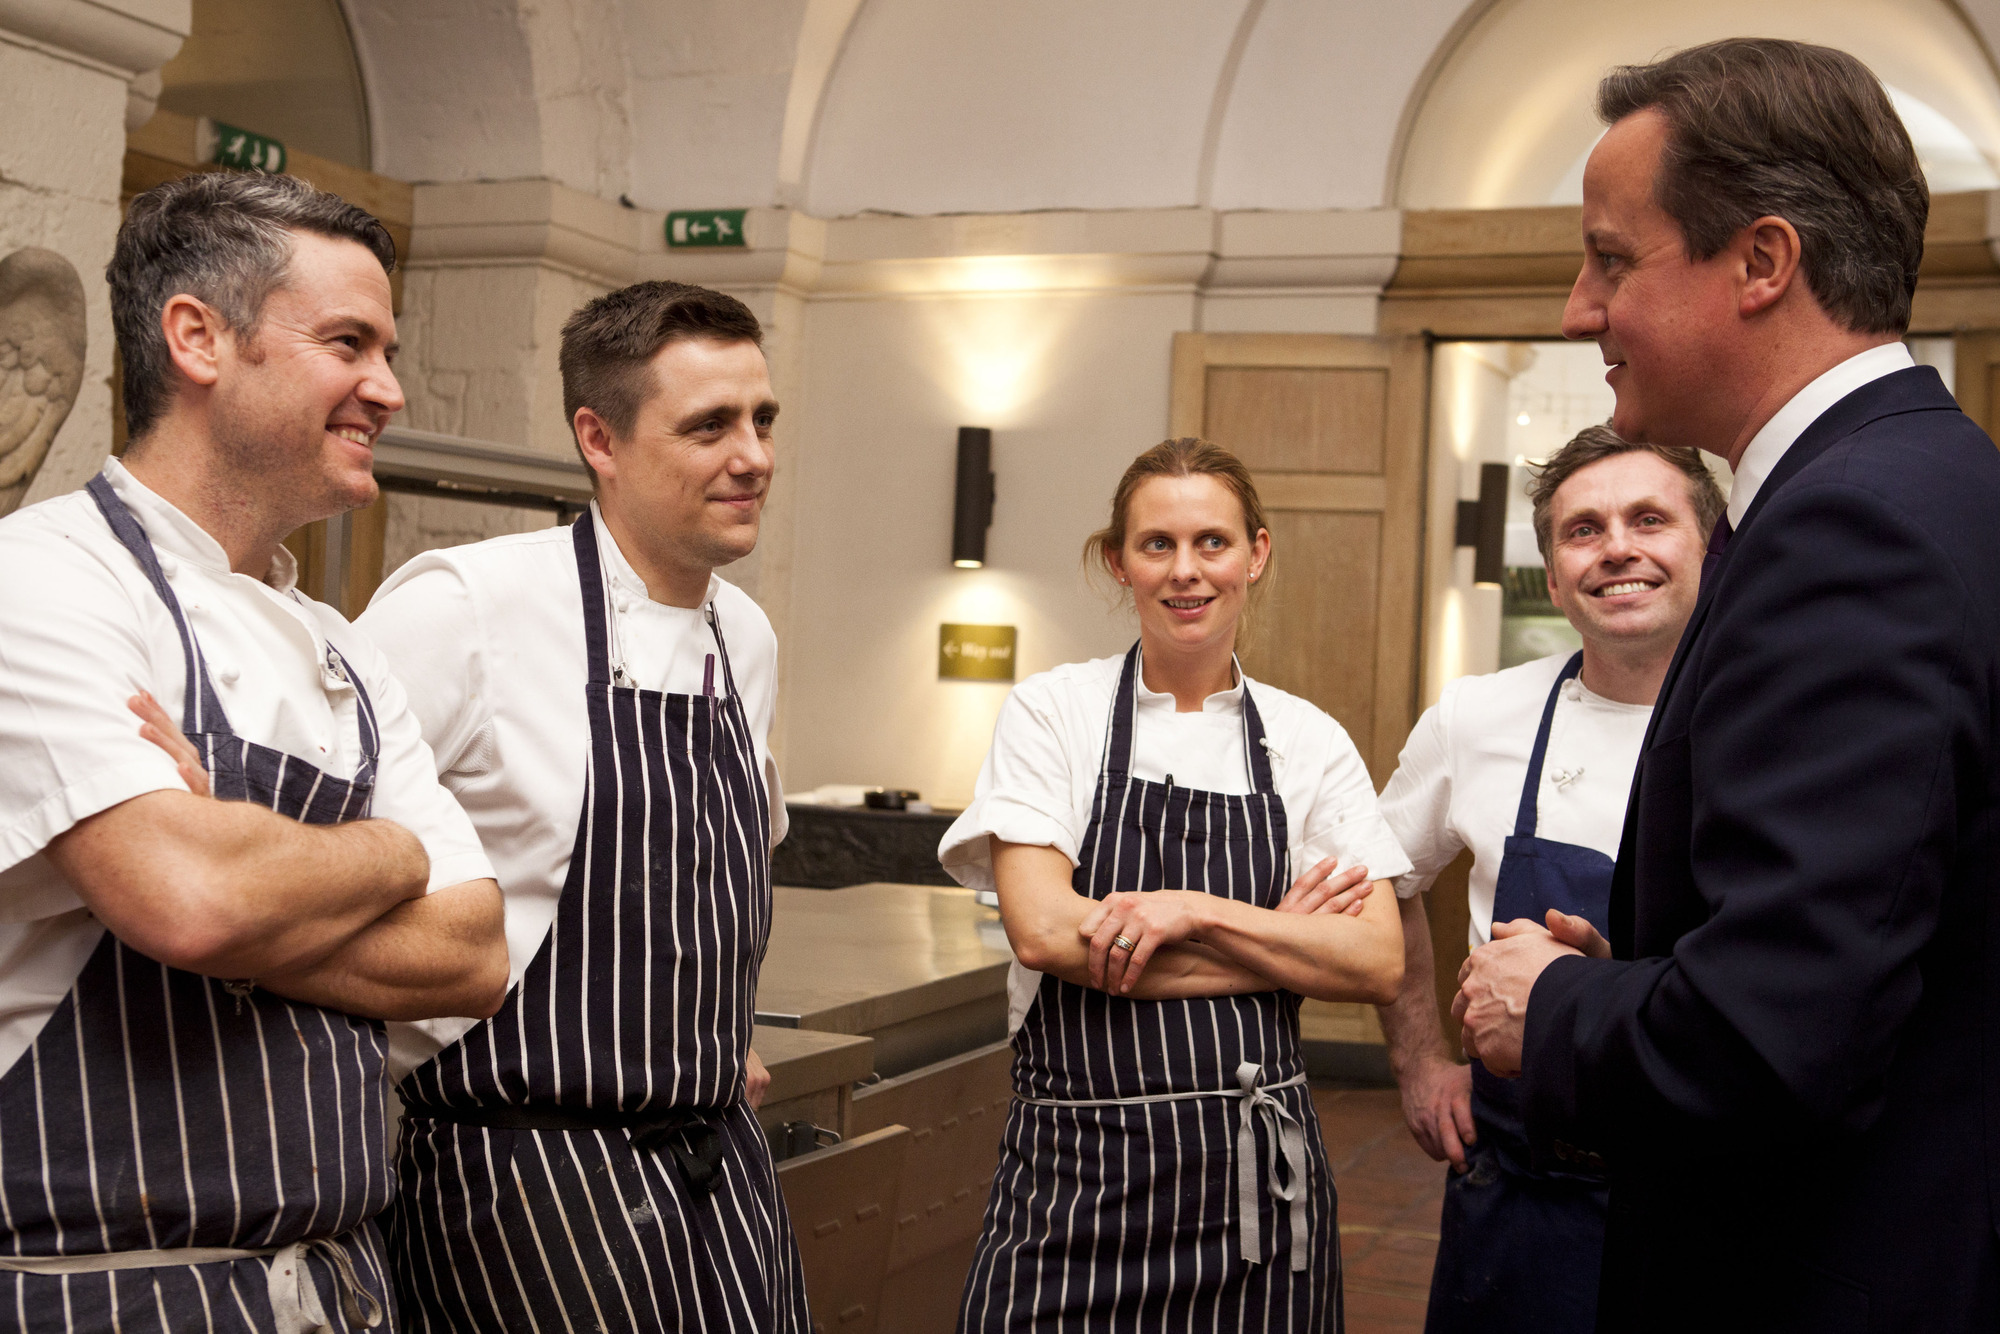 Cotswold chef wins BBC show Great British Menu